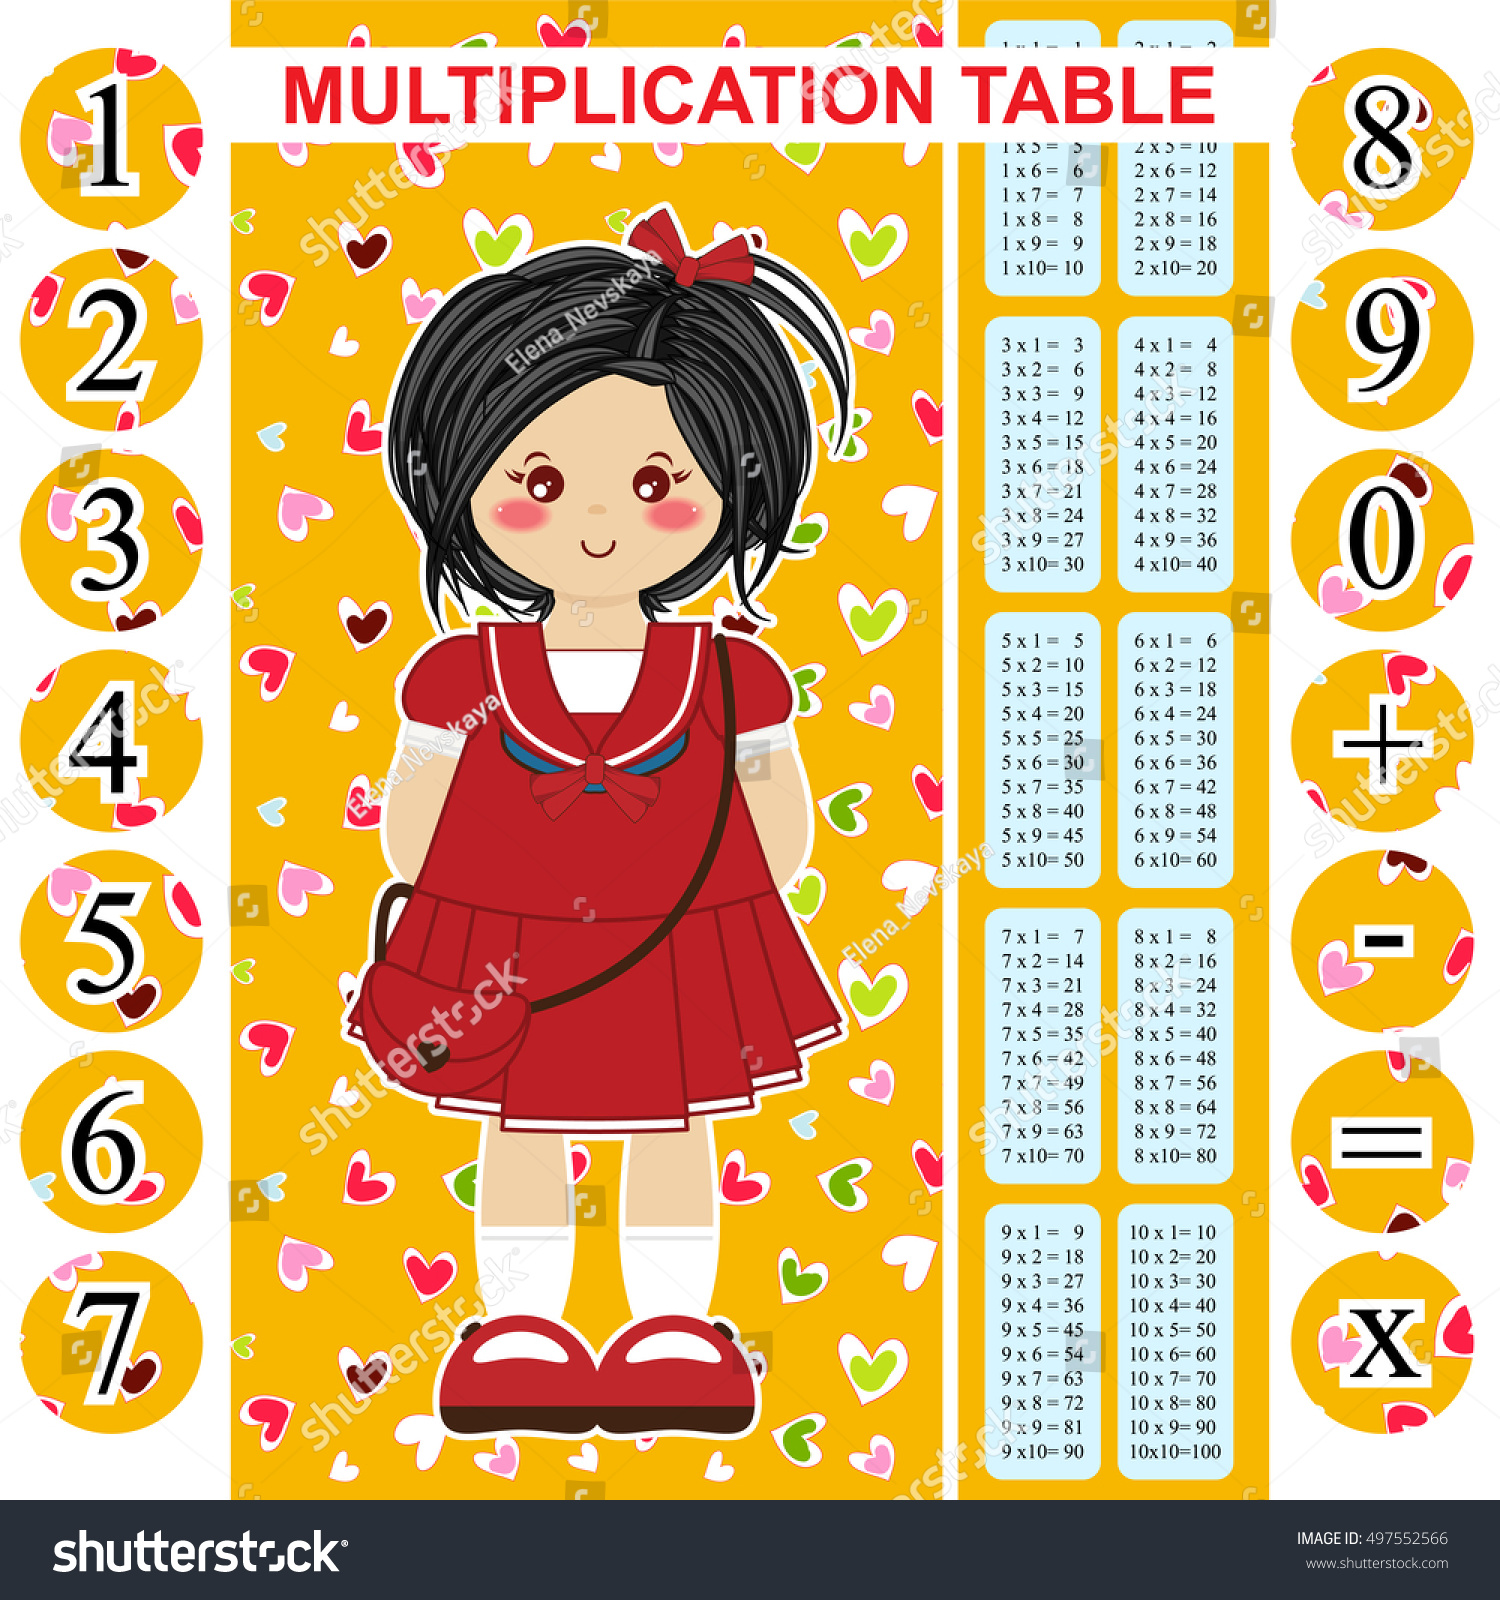 Poster 60 x 80 design - Printable Bookmark Poster And Stickers With Multiple Tables And Numbers